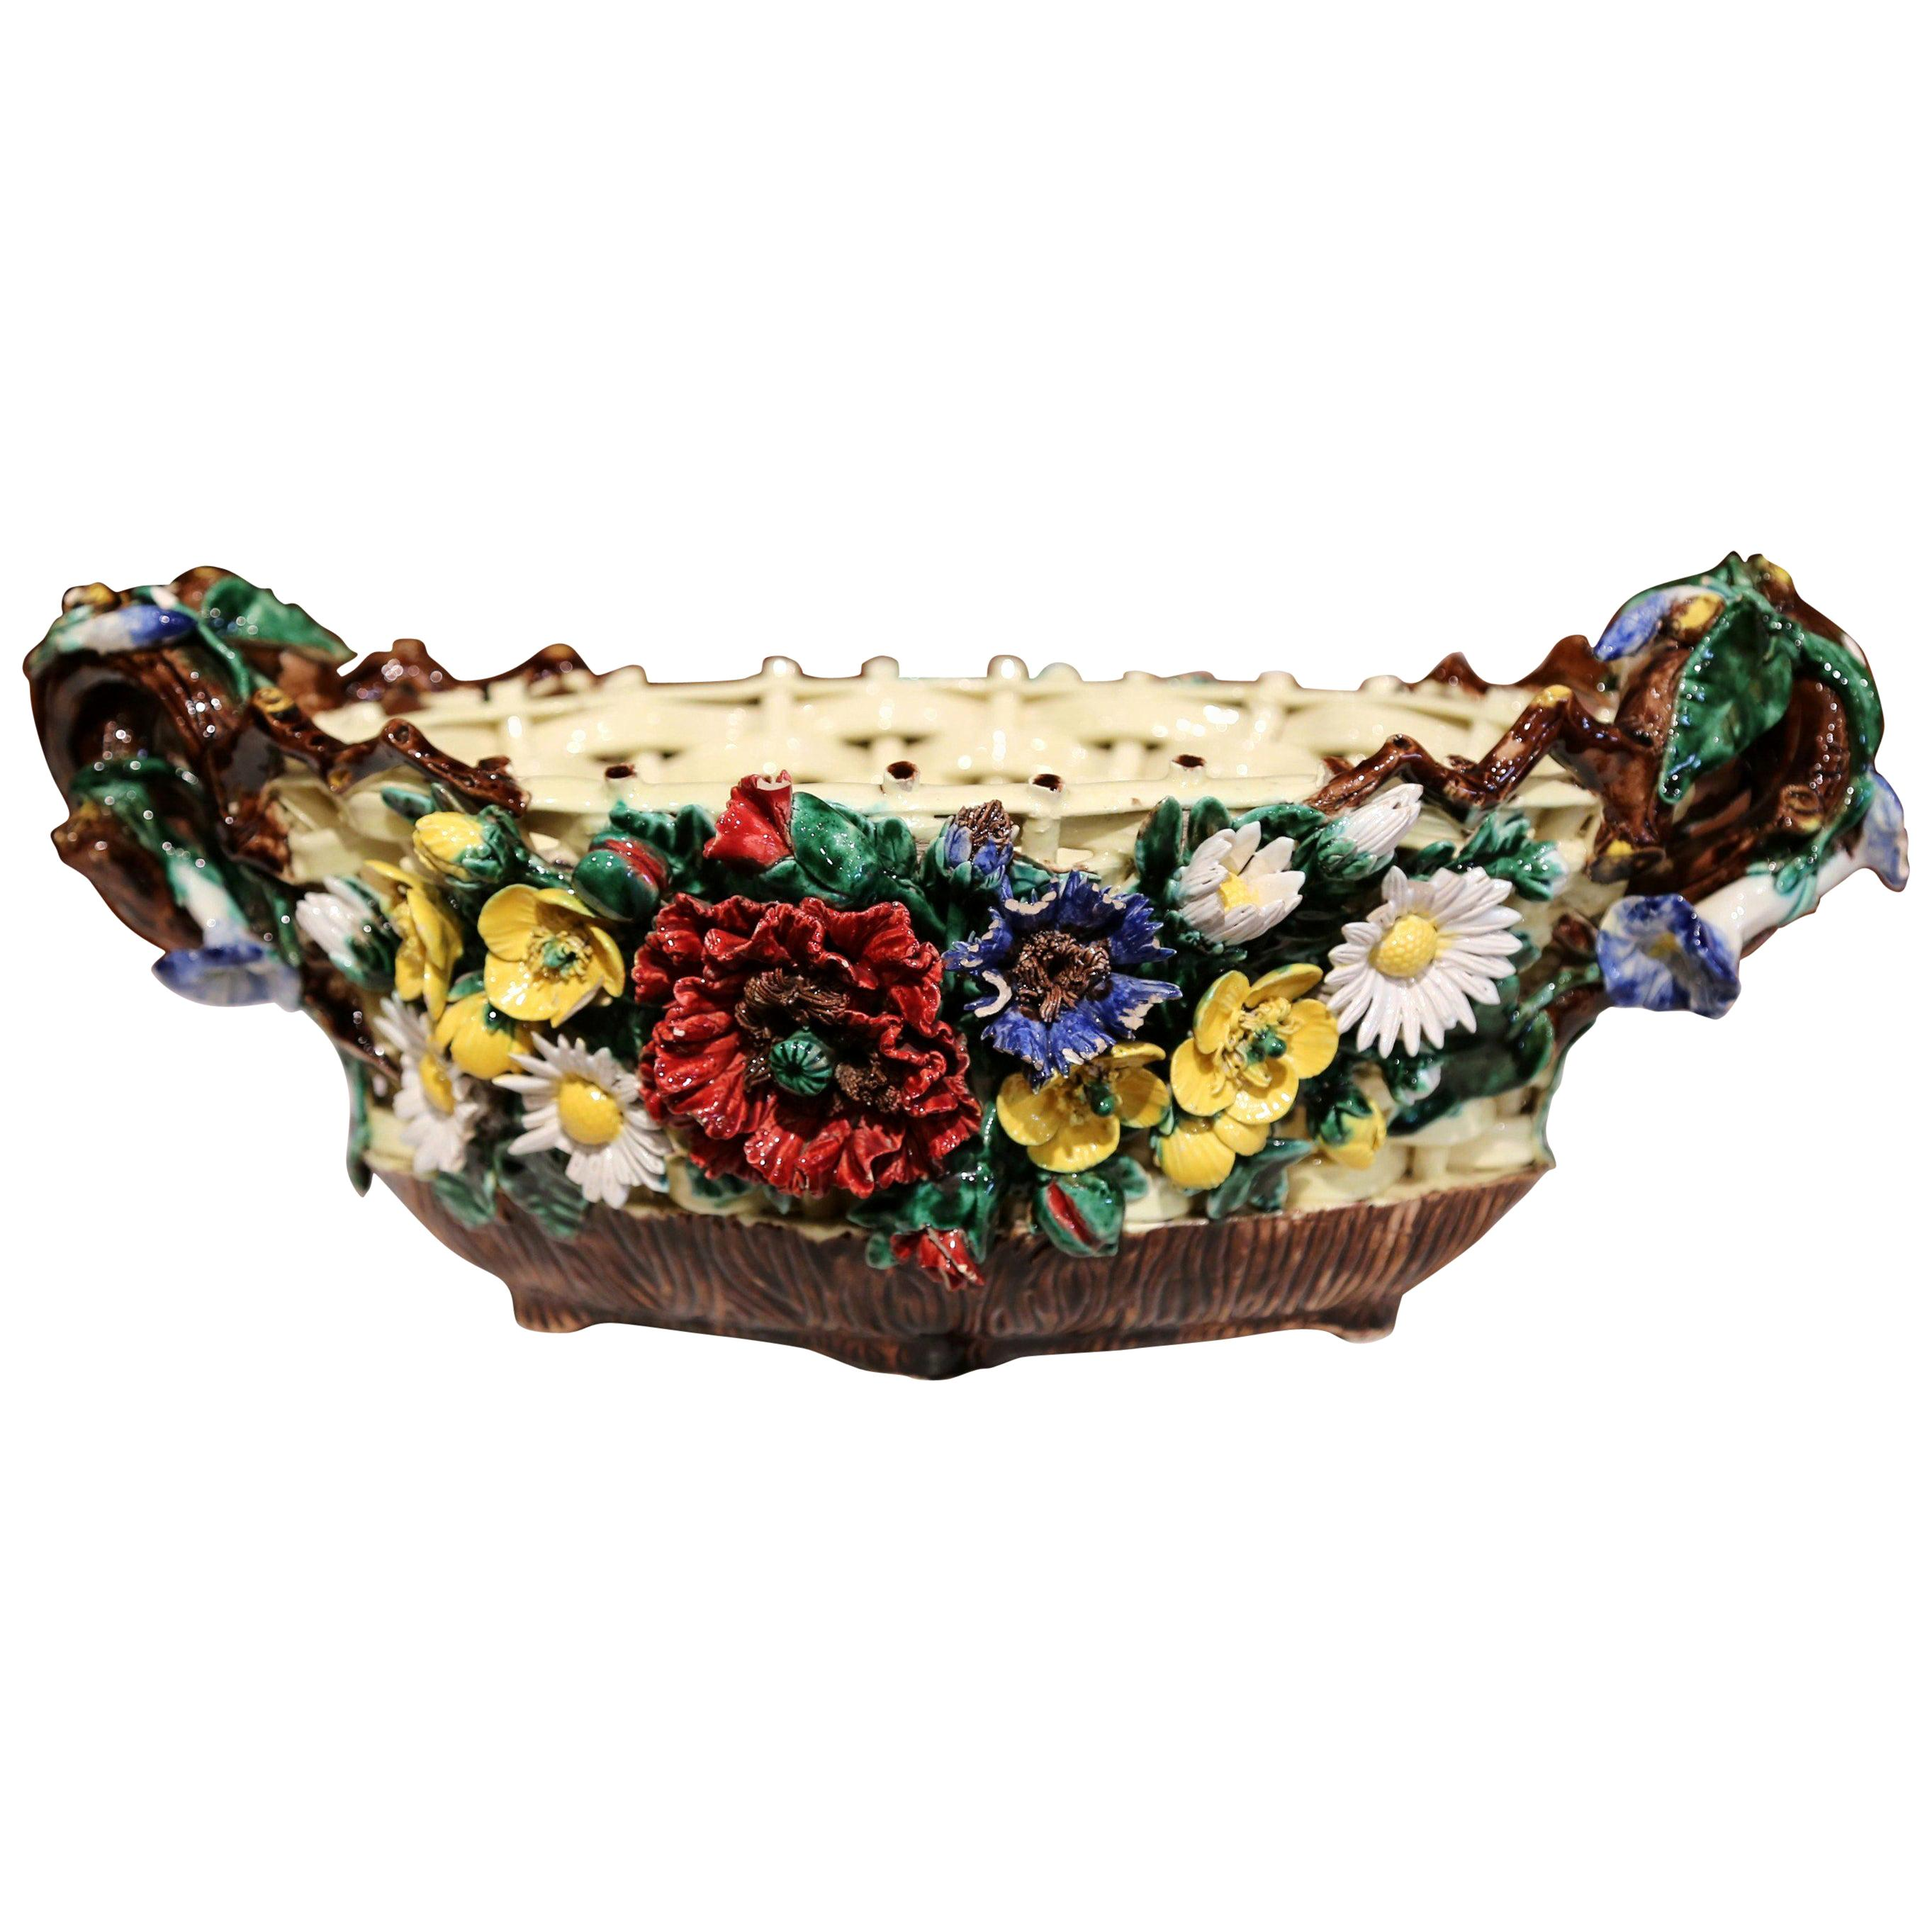 19th Century French Hand Painted Barbotine Ceramic Jardinière with Floral Decor